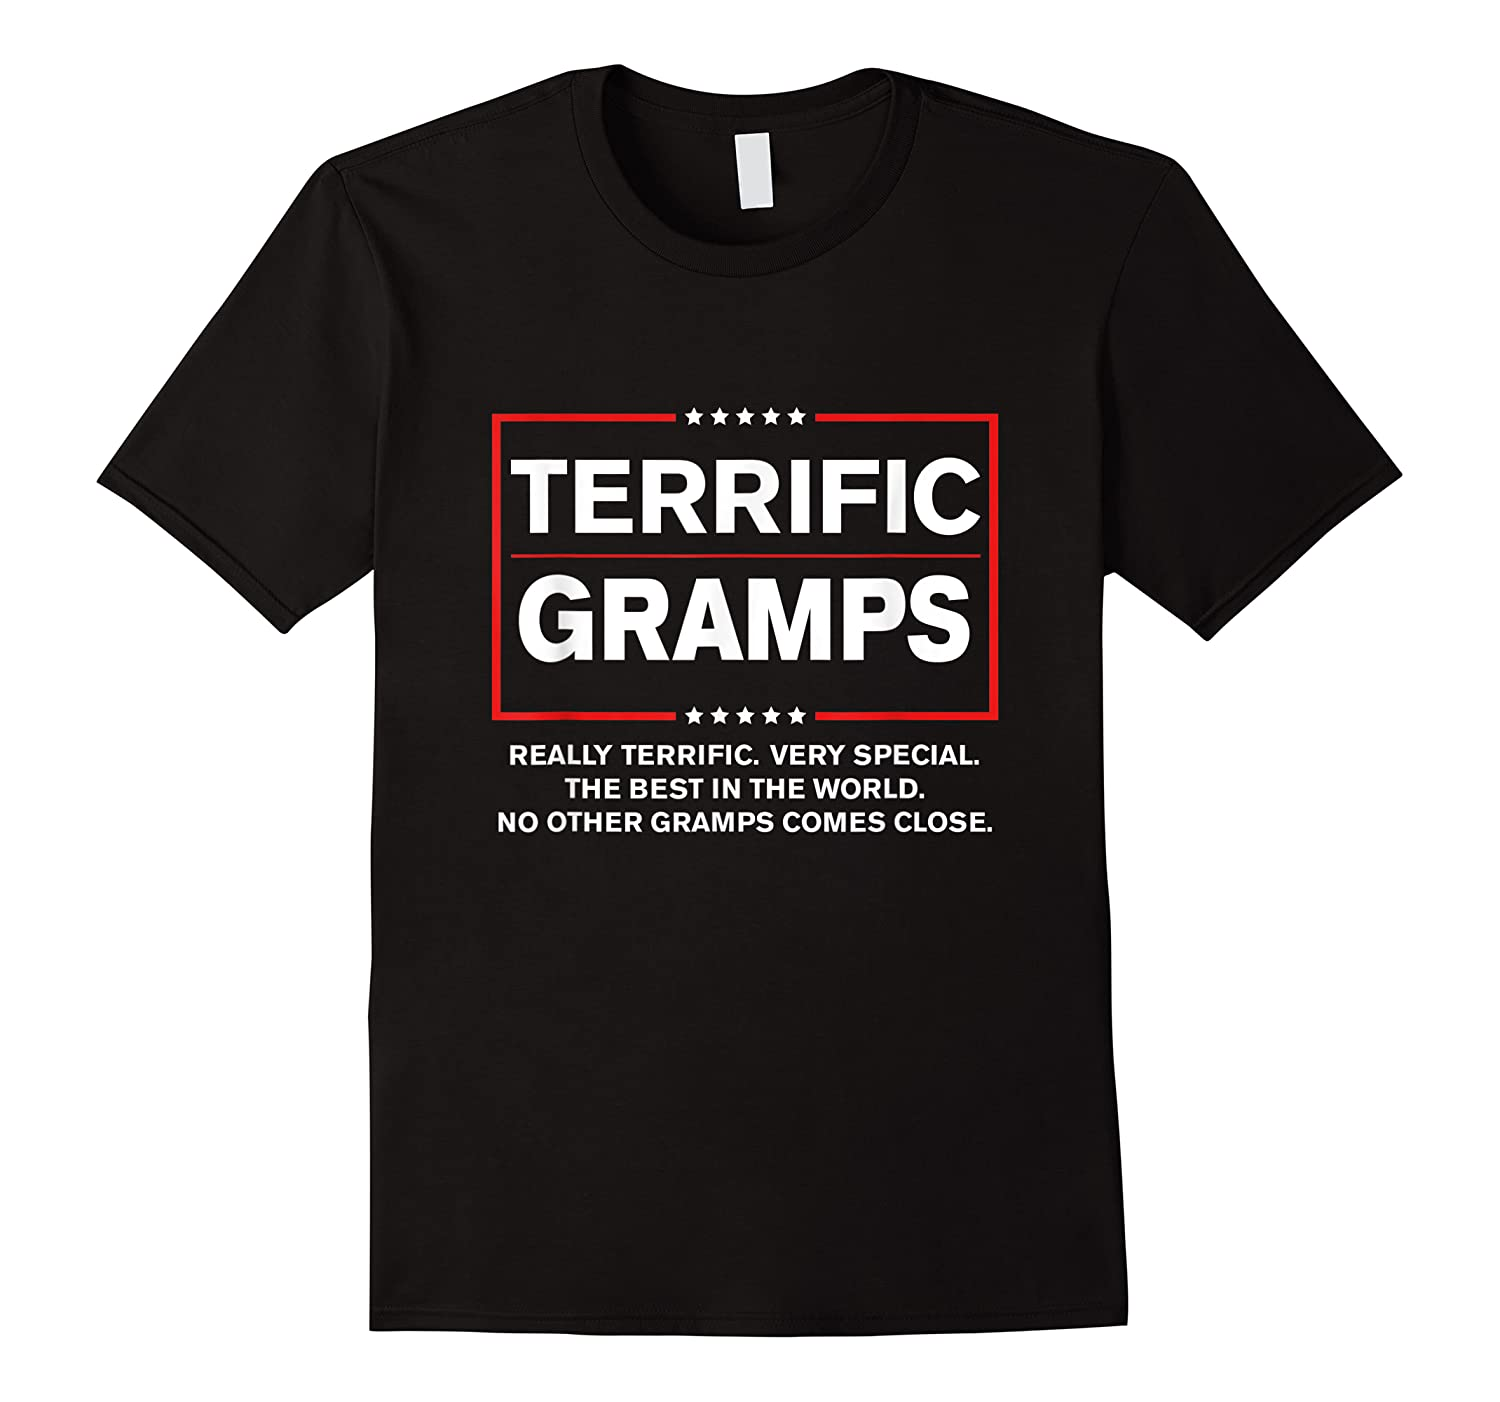 Donald Trump Fathers Day Gift For Gramps Funny Campaign Sign T Shirt